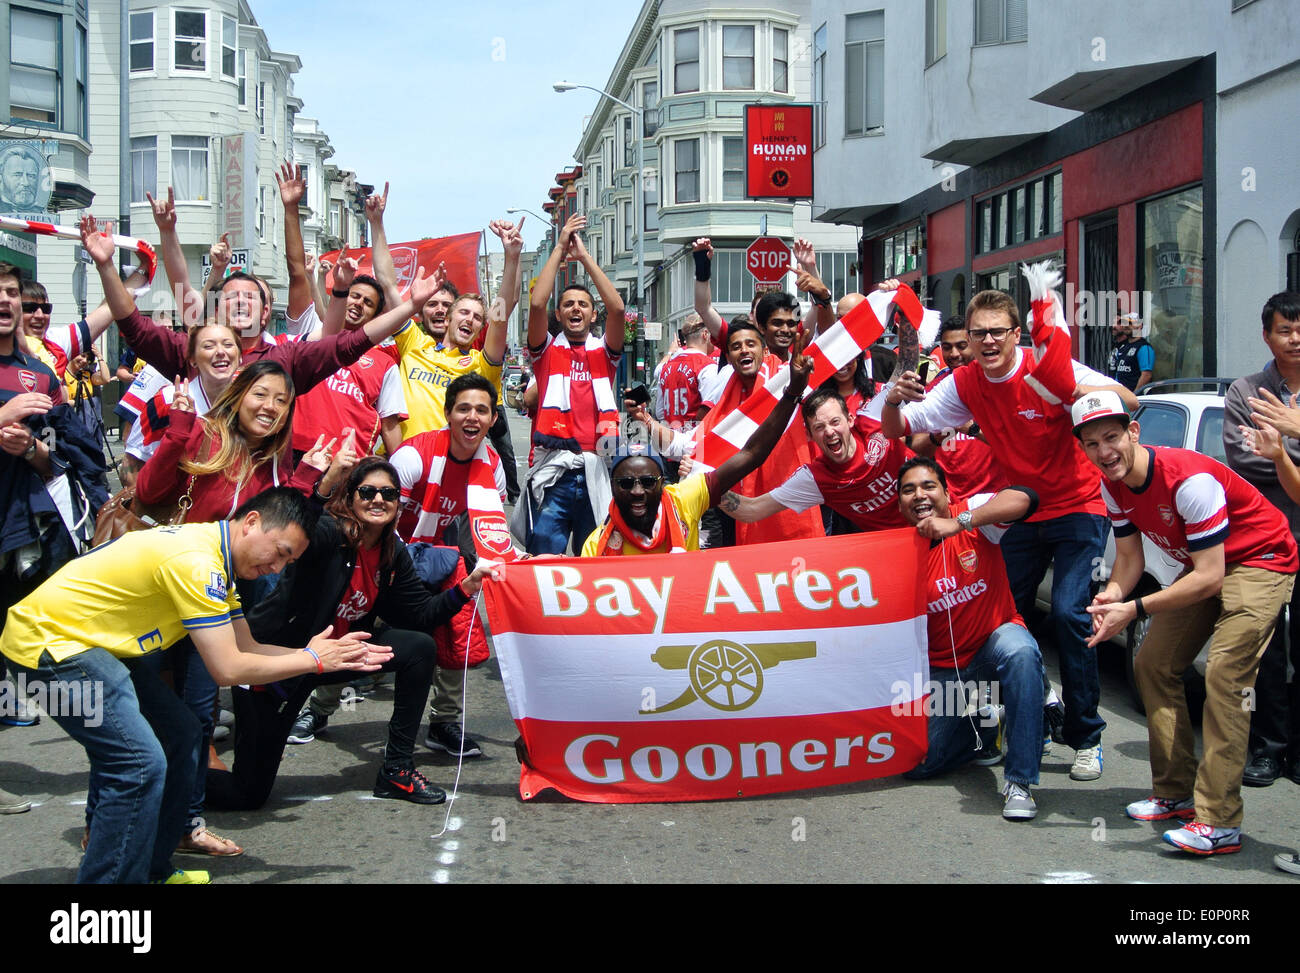 San Francisco, CA, USA. 18th May, 2014. happy Arsenal  Bay area Gooners soccer fans clebrate victory over Hull  city FC on Grant street San Francisco following arsenal's FA cup championship, the first in nine years. Credit:  Bob Kreisel/Alamy Live News - Stock Image